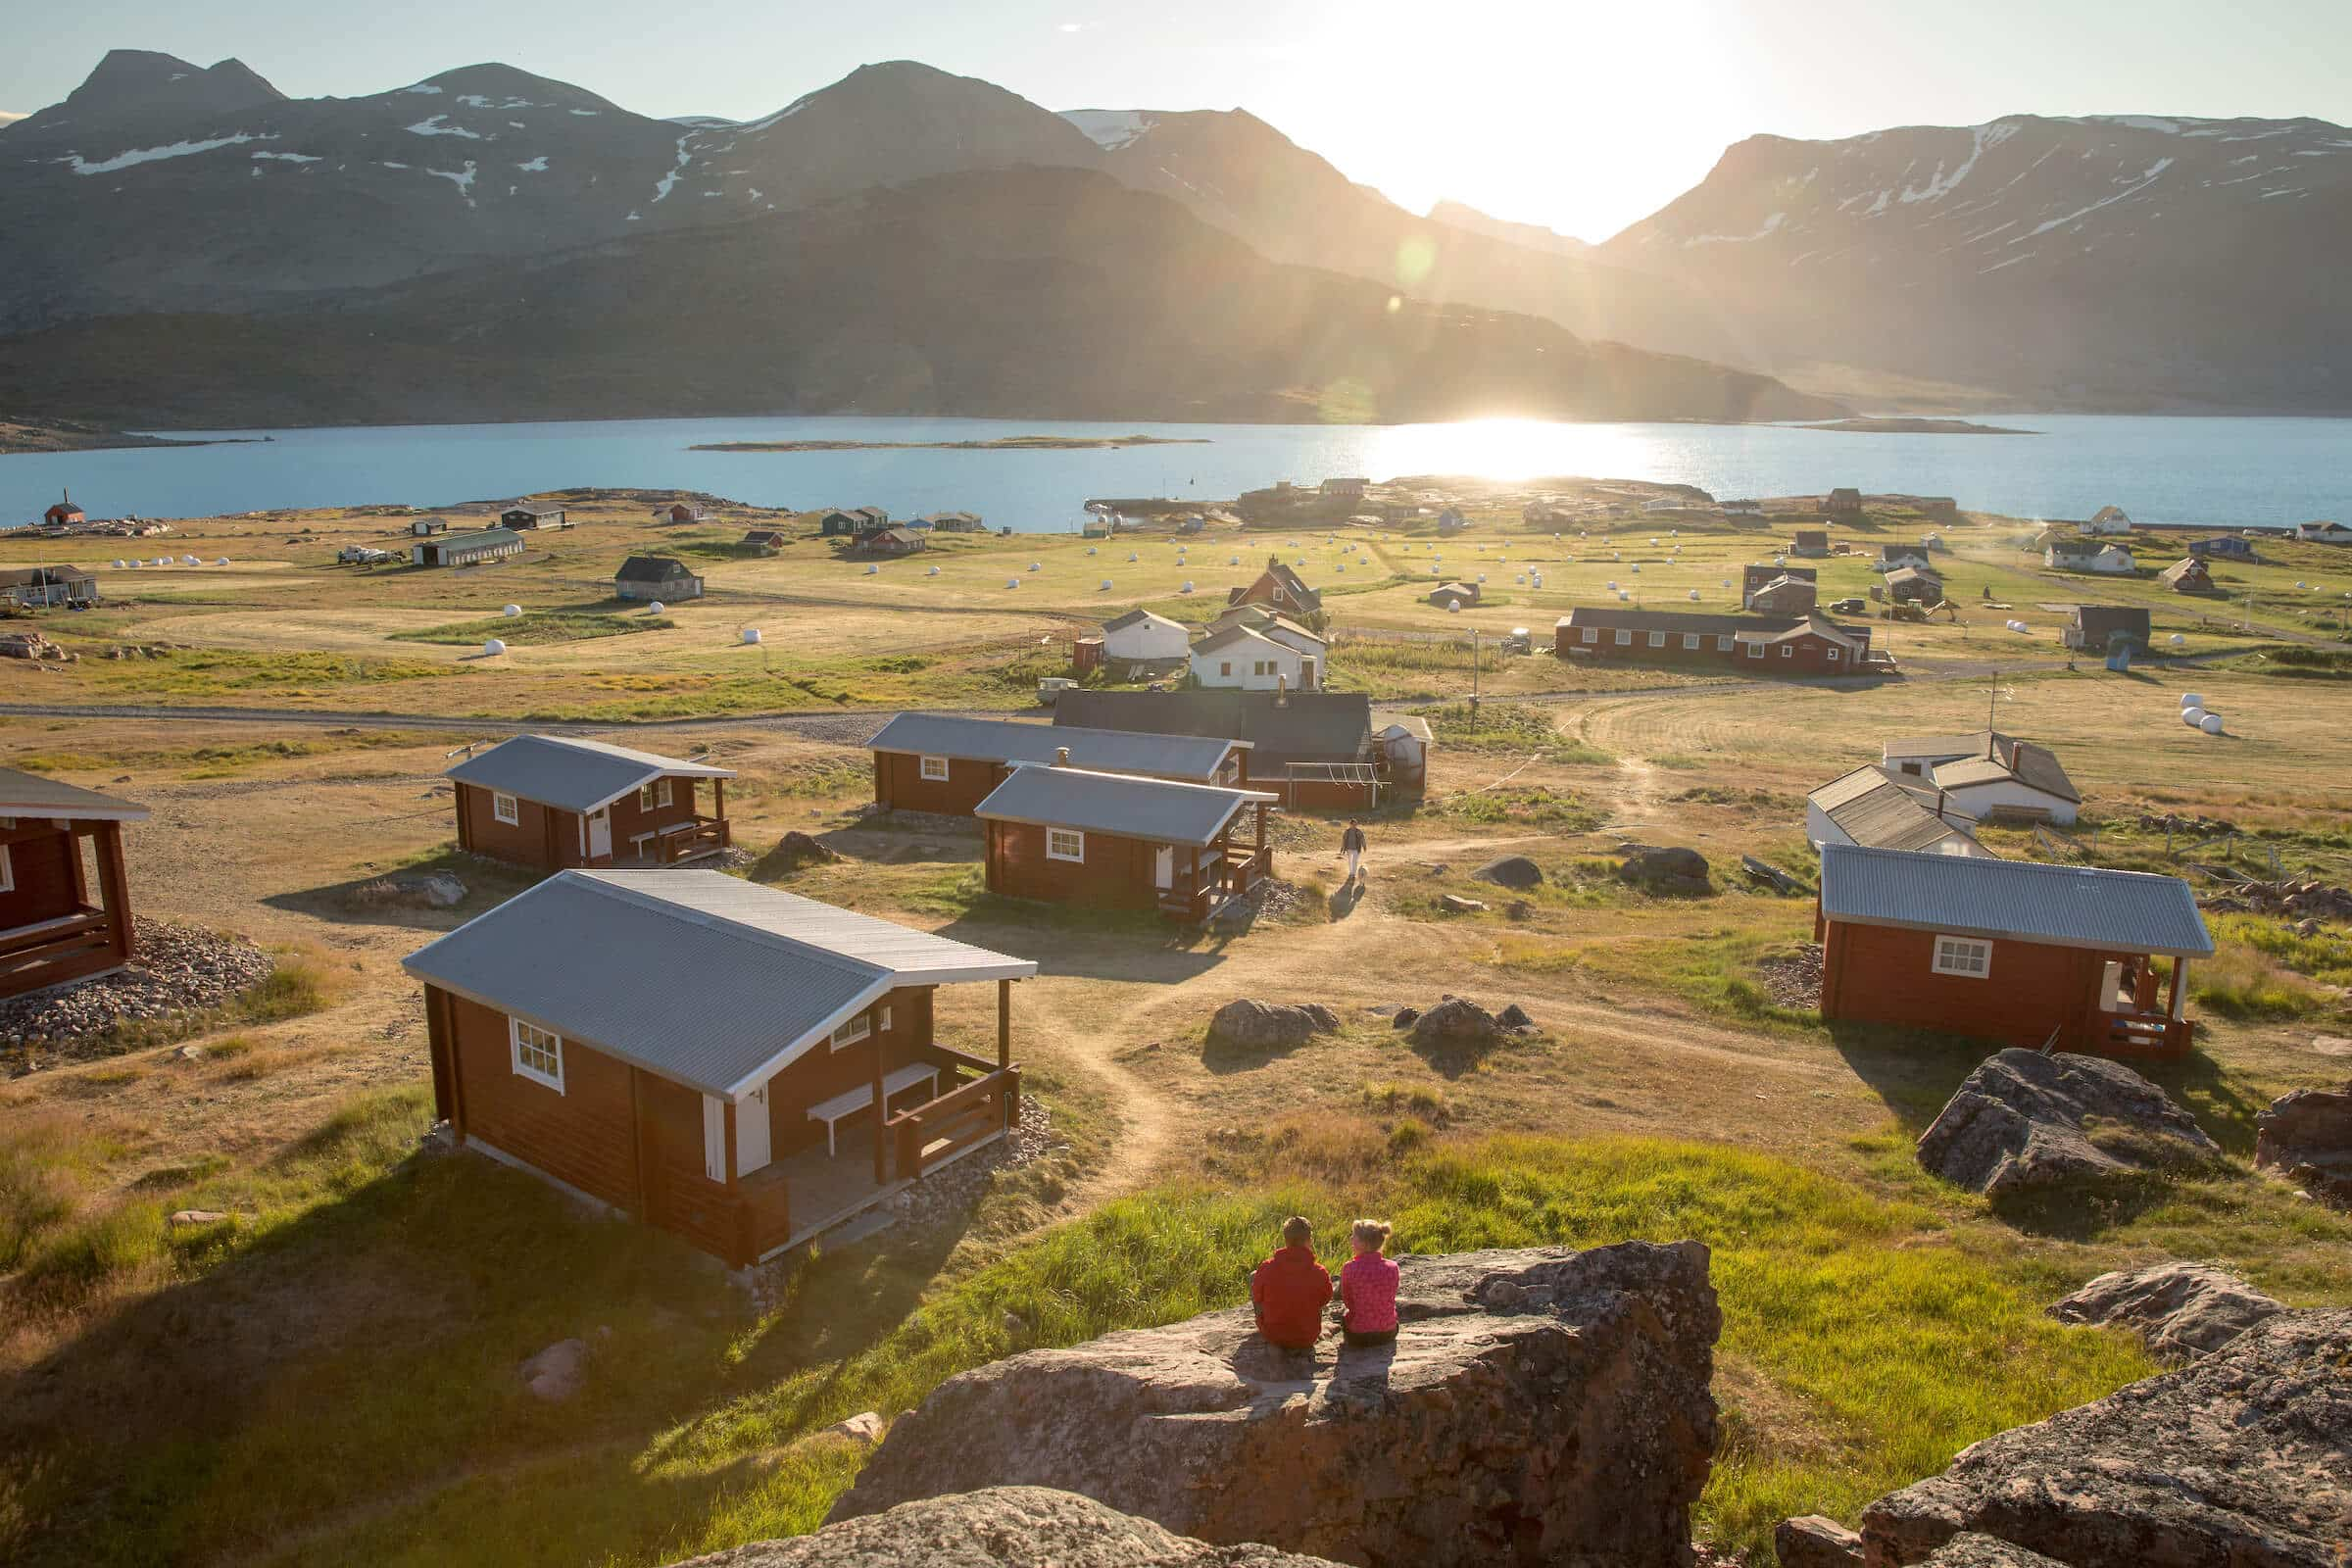 Two guests enjoying the sunset at the Blue Ice hut accommodation in Igaliku in South Greenland. Photo by Mads Pihl.